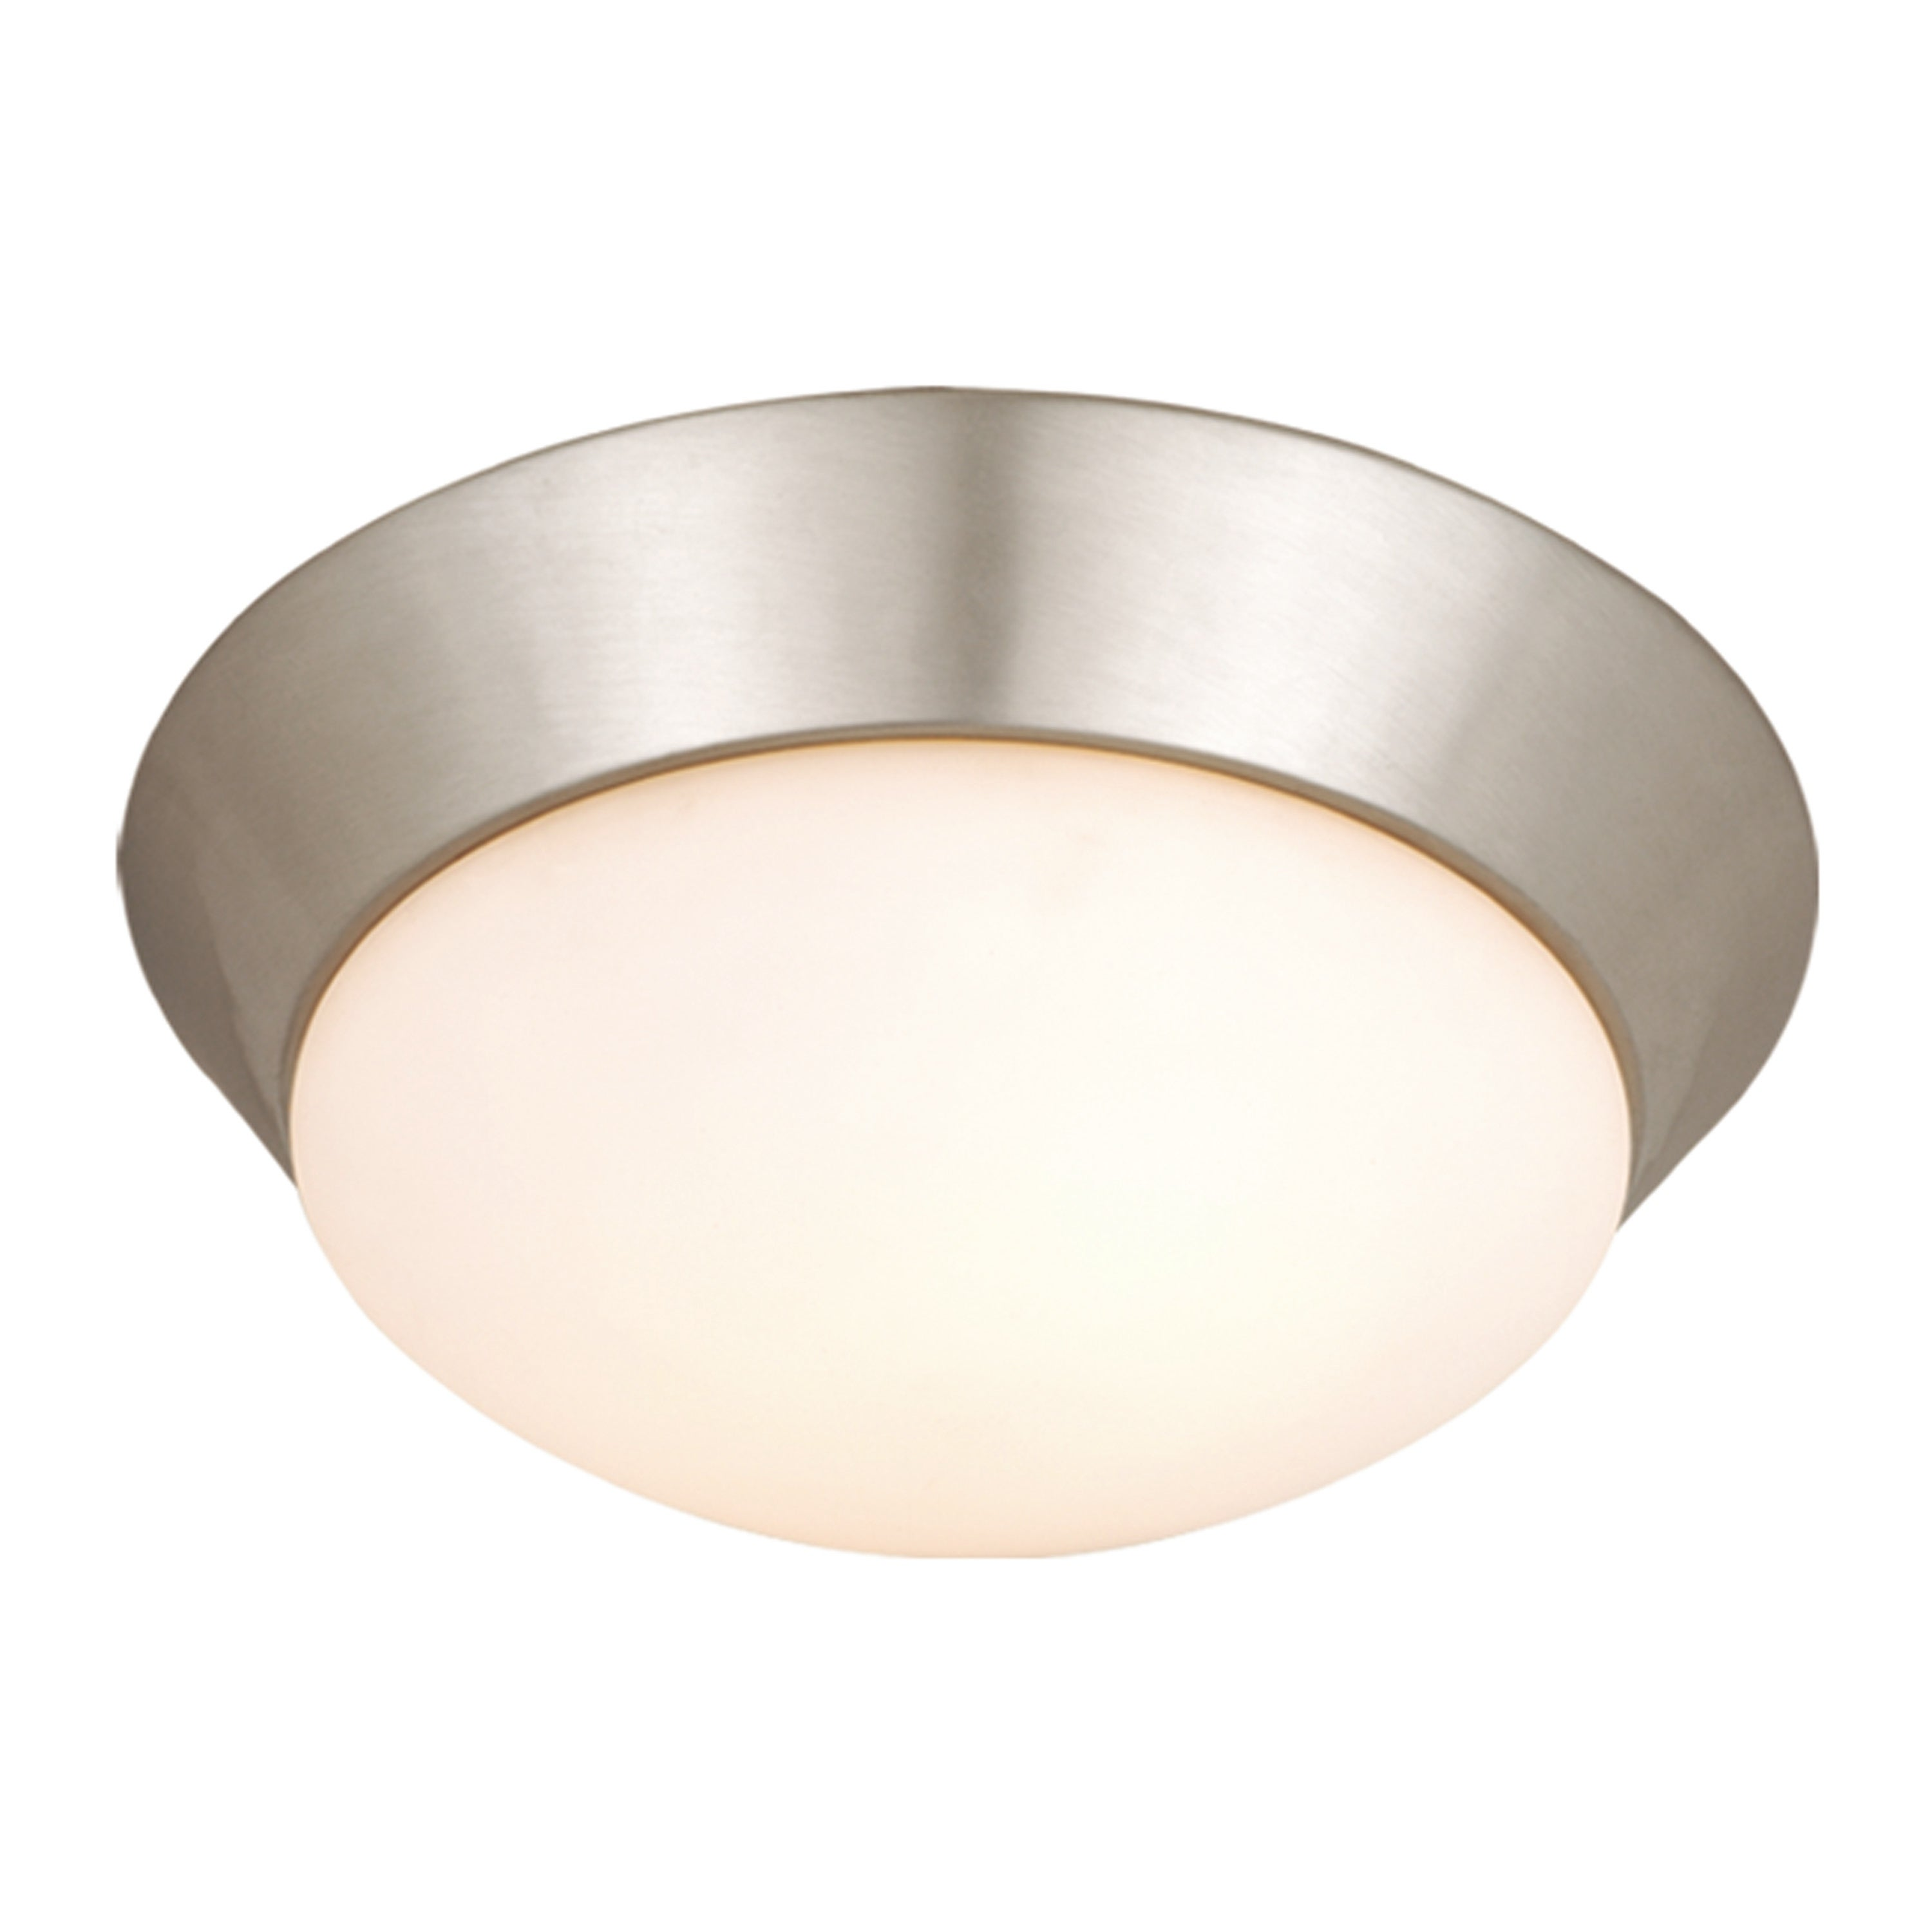 Tertial 14 In W Brushed Nickel Flush Mount Ceiling Light Fixture White Glass 14 In W X 4 75 In H X 14 In D Overstock 20906780